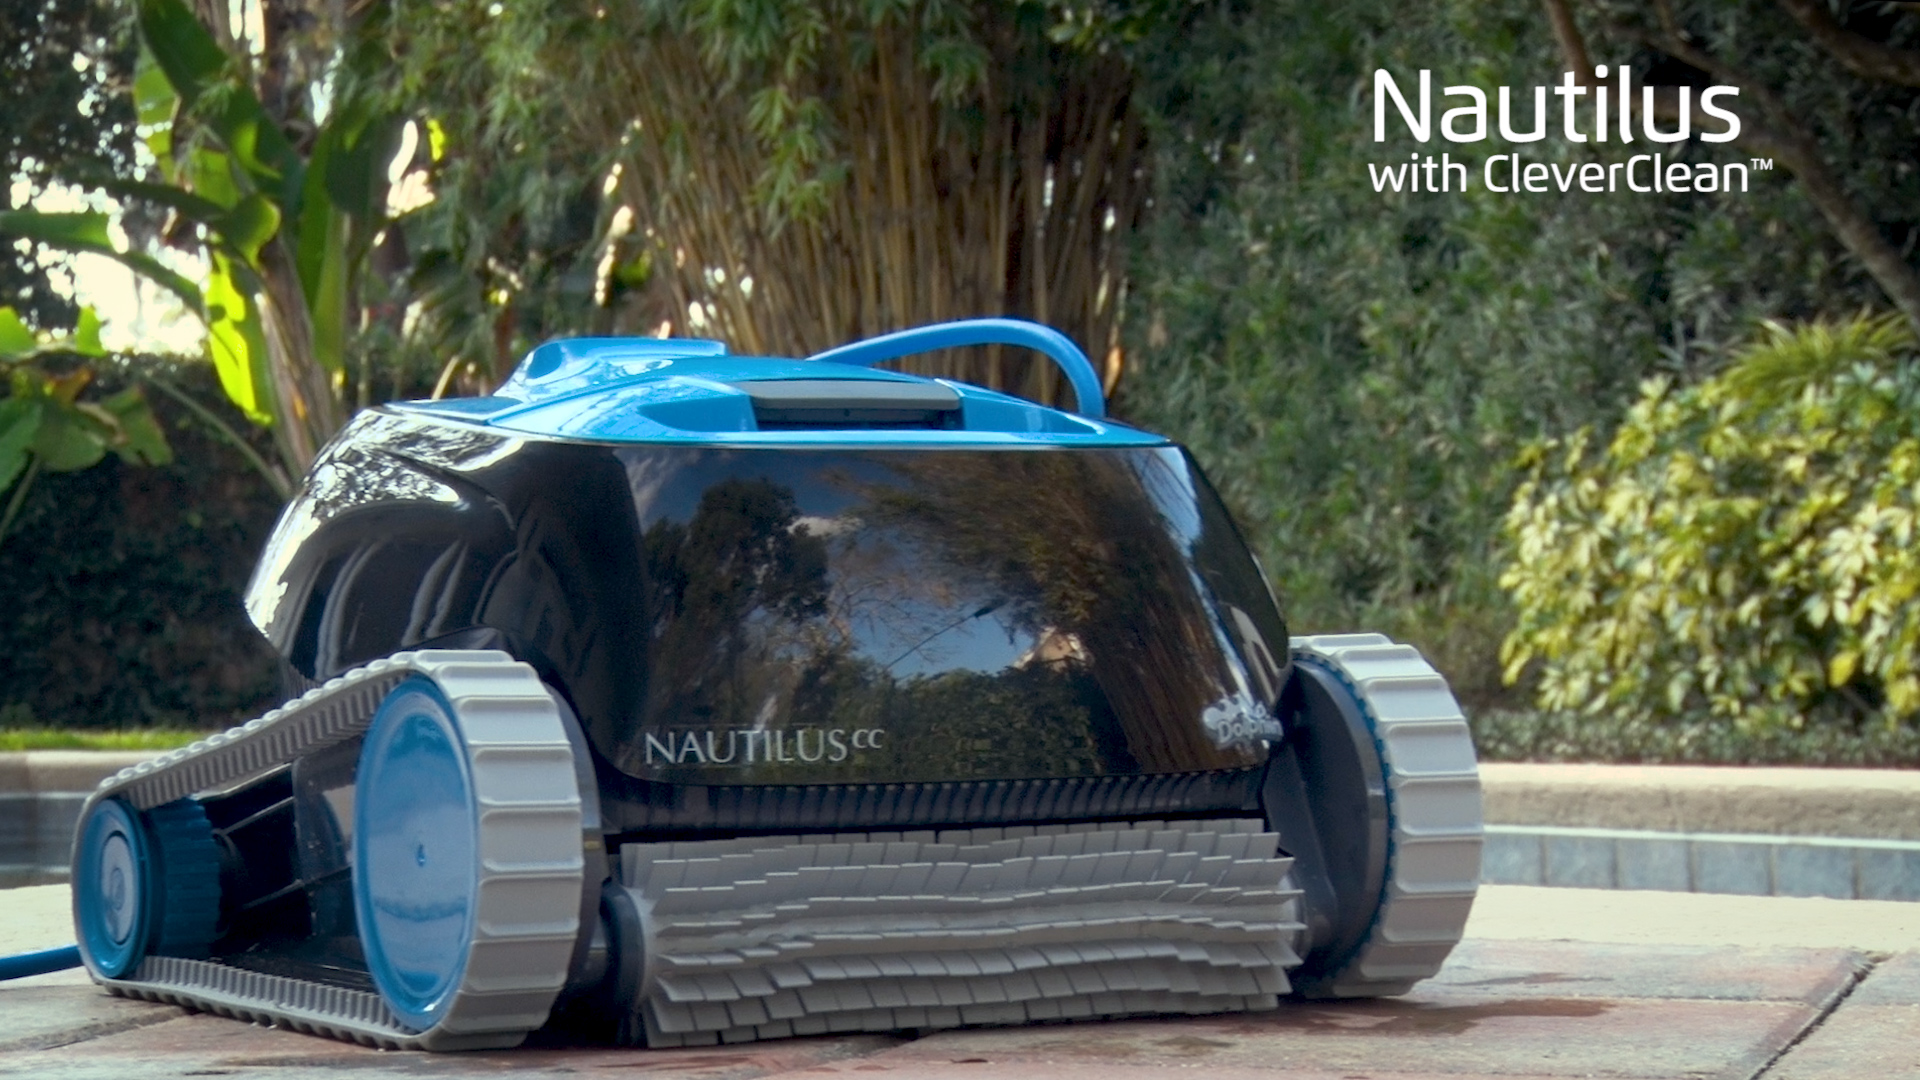 Dolphin Nautilus Cc Automatic Robotic Pool Cleaner With